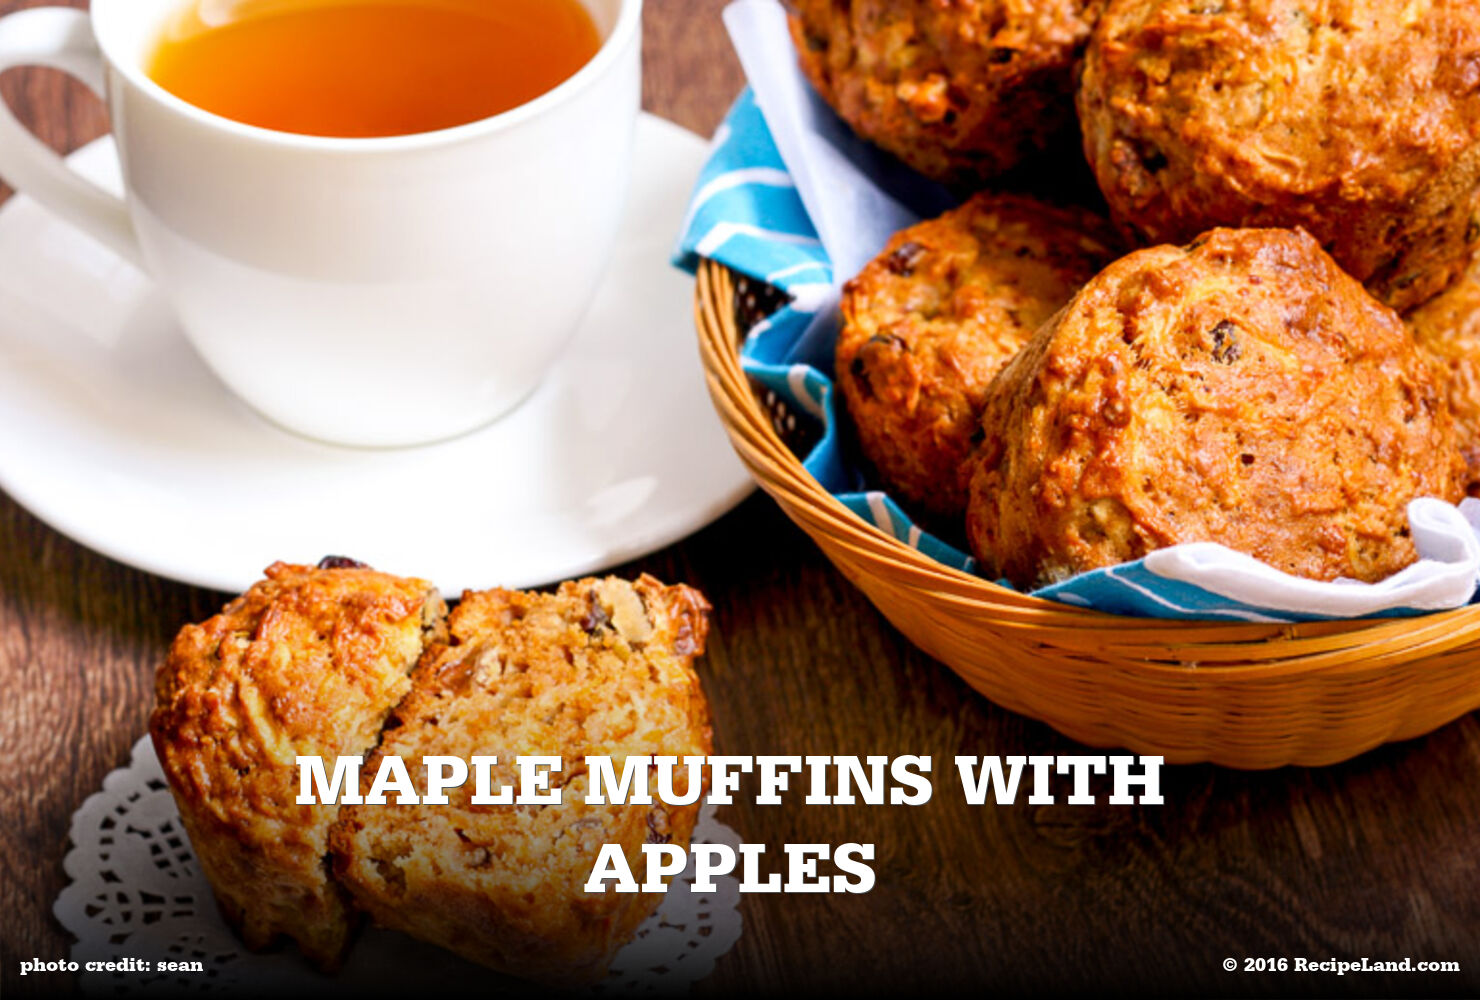 Maple Muffins with Apples